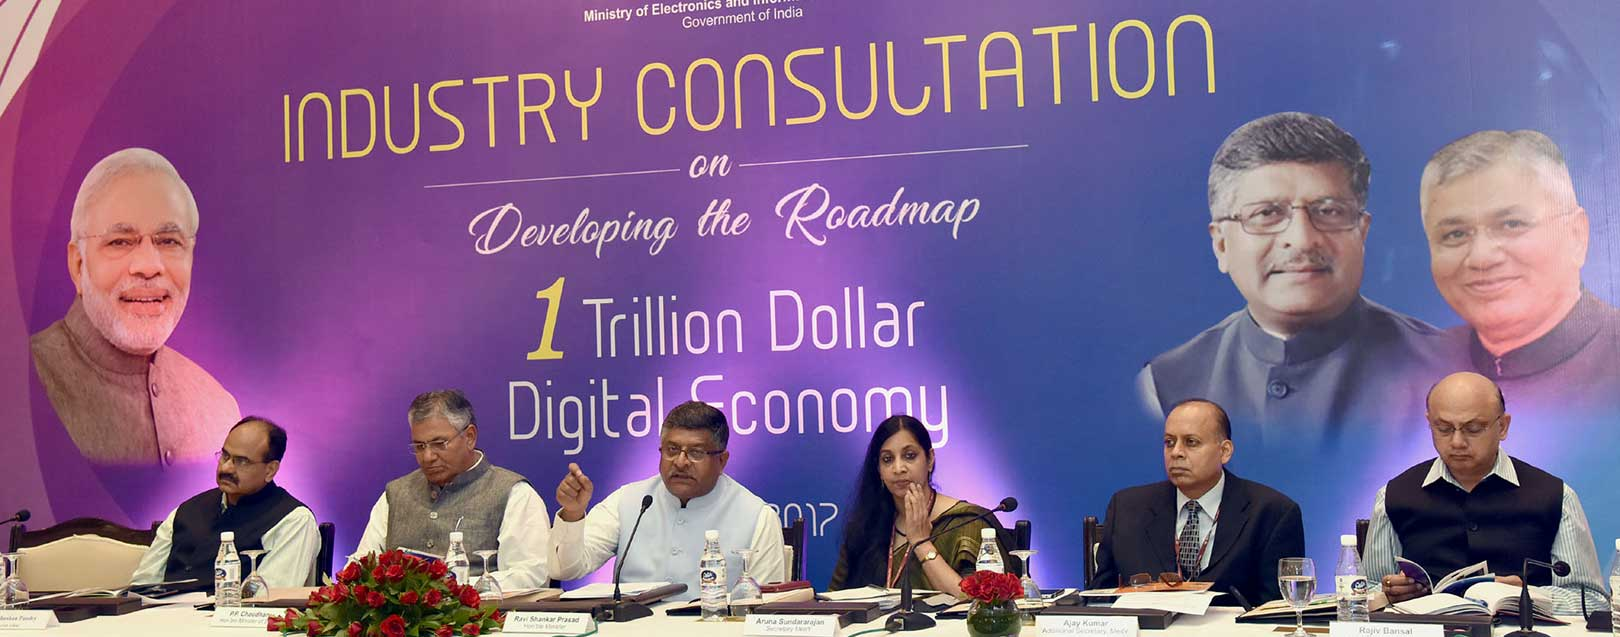 'Achieving $1 trillion digital economy is not a tall claim. Why wait for 7 years? Can we do it in 3-4 yrs?' Prasad